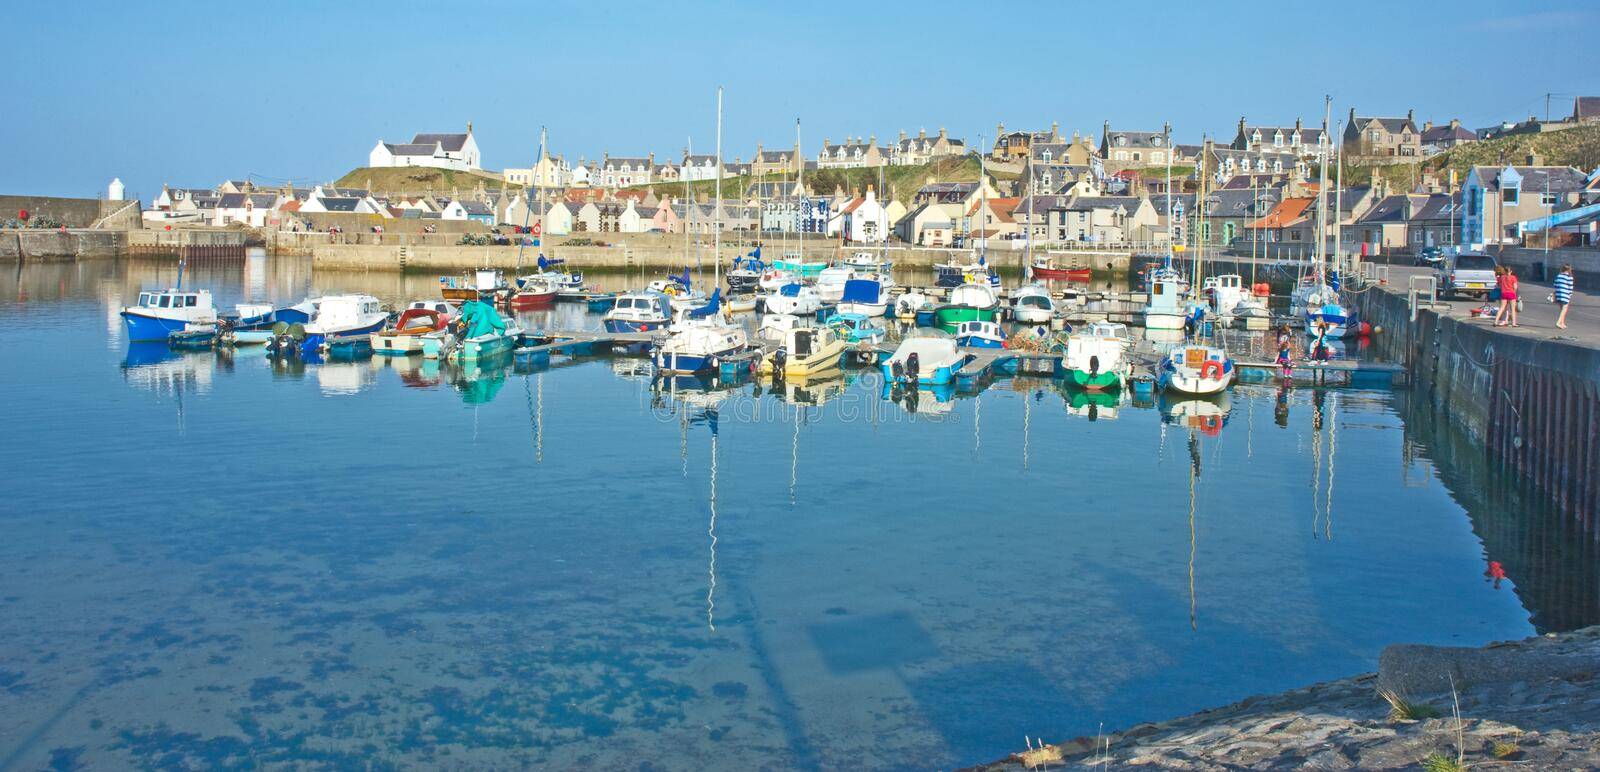 Download The harbour at Findochty editorial stock photo. Image of harbor - 24026468